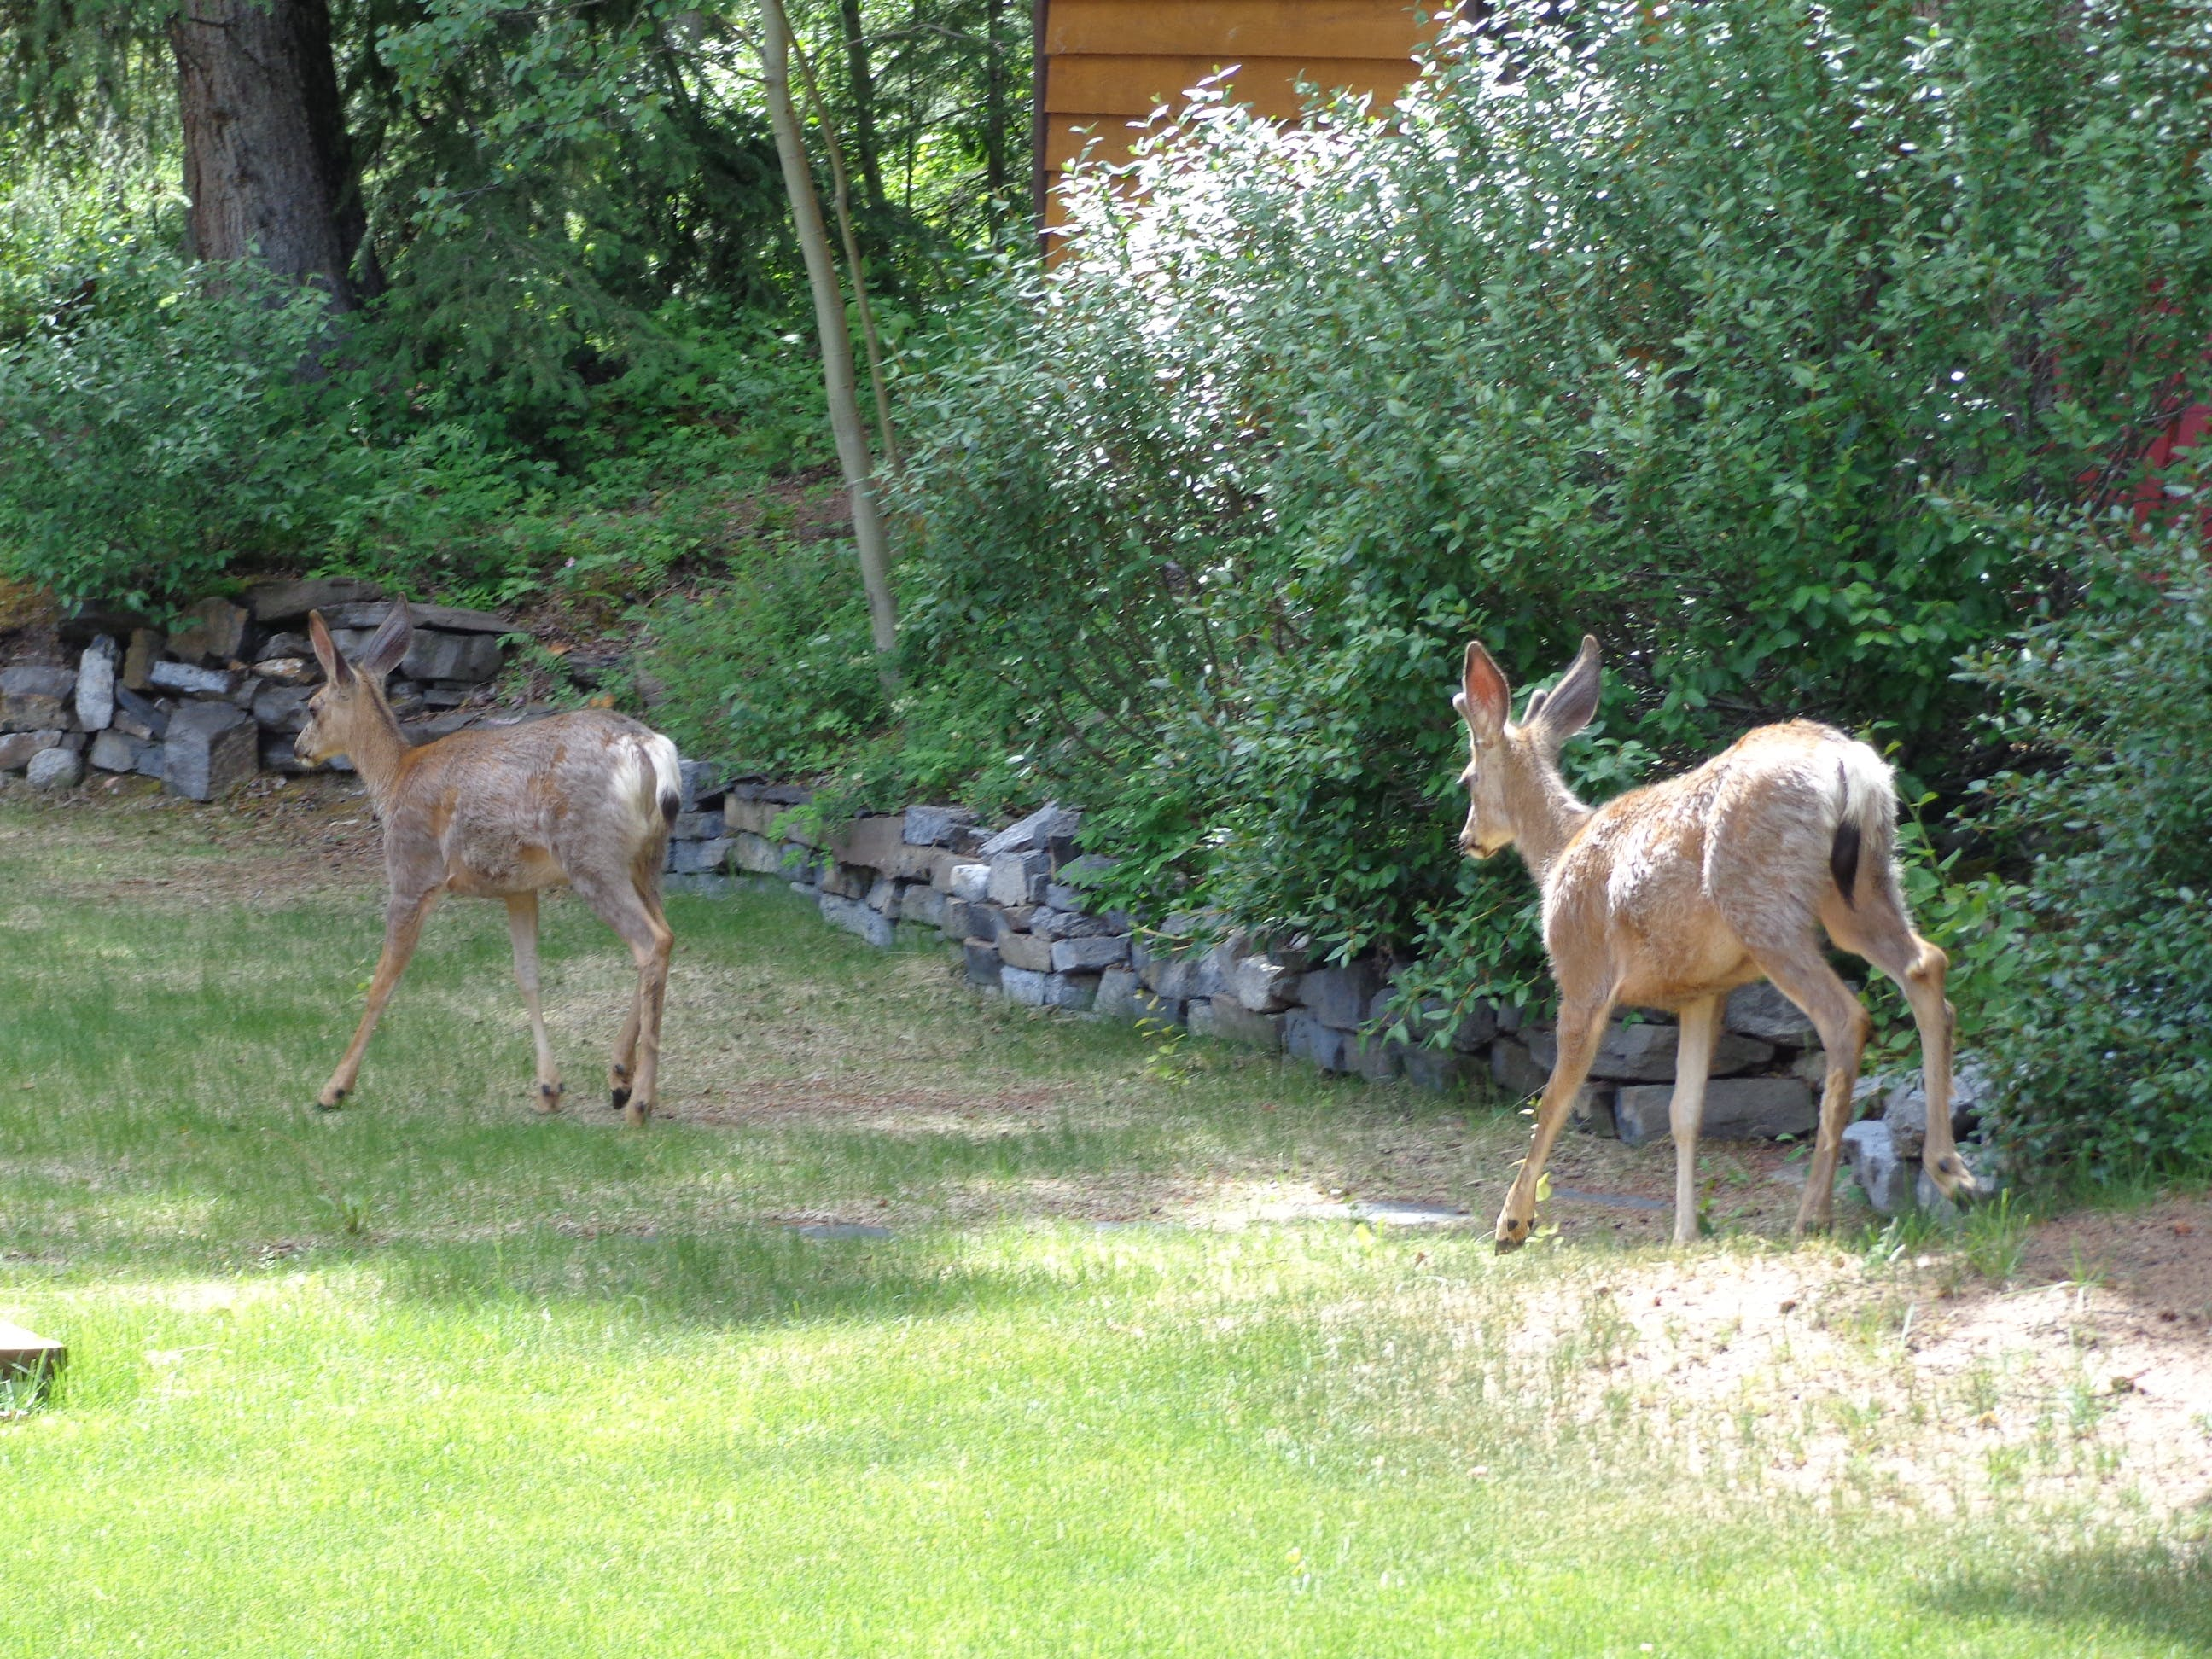 deer pass through the property regularly